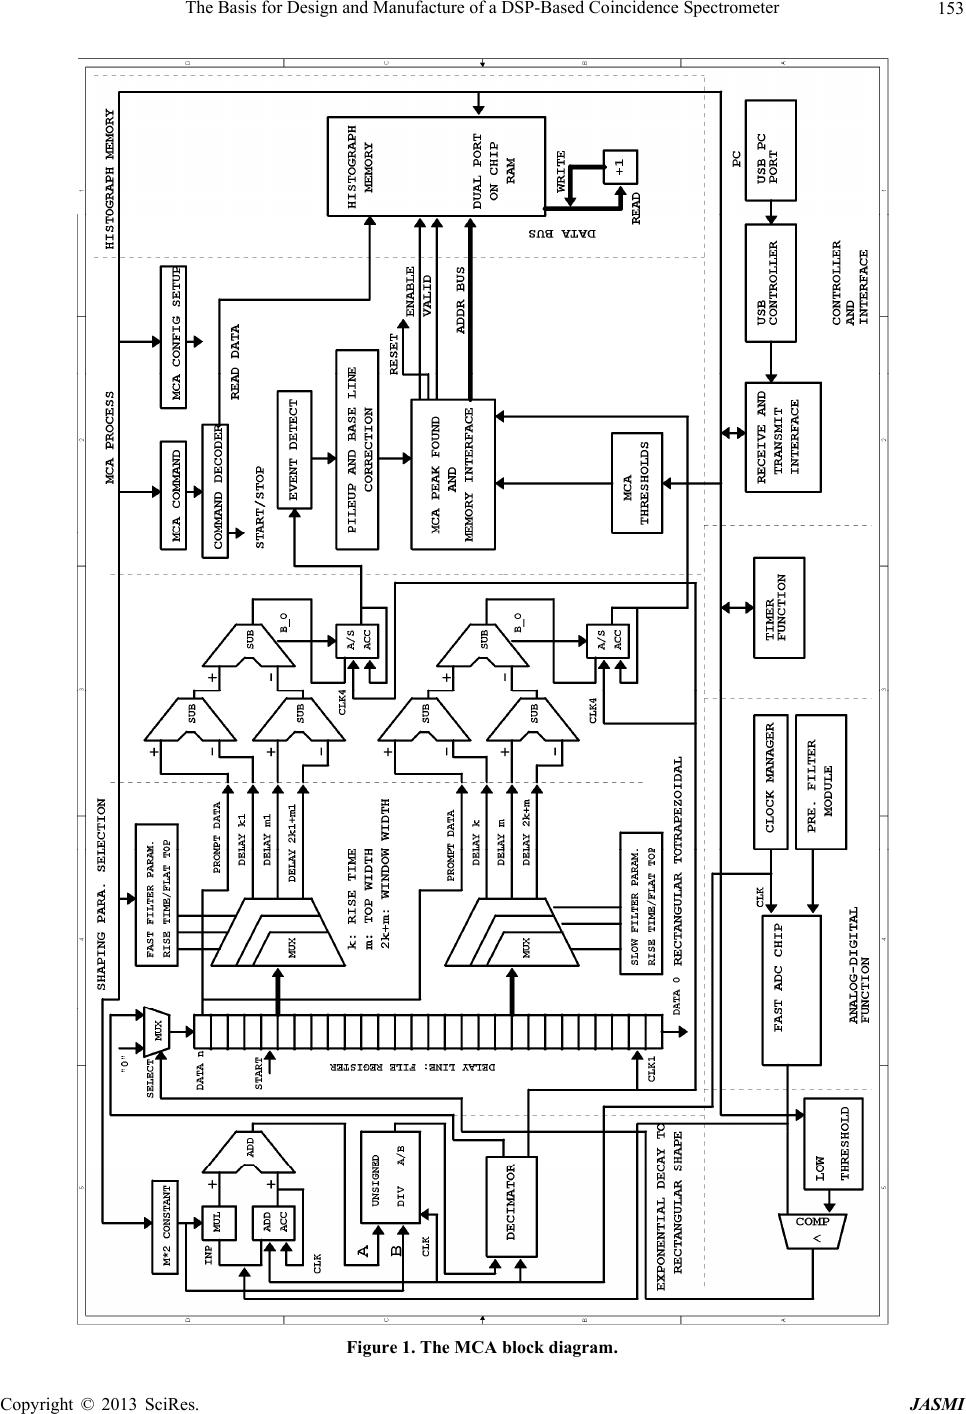 the basis for design and manufacture of a dsp